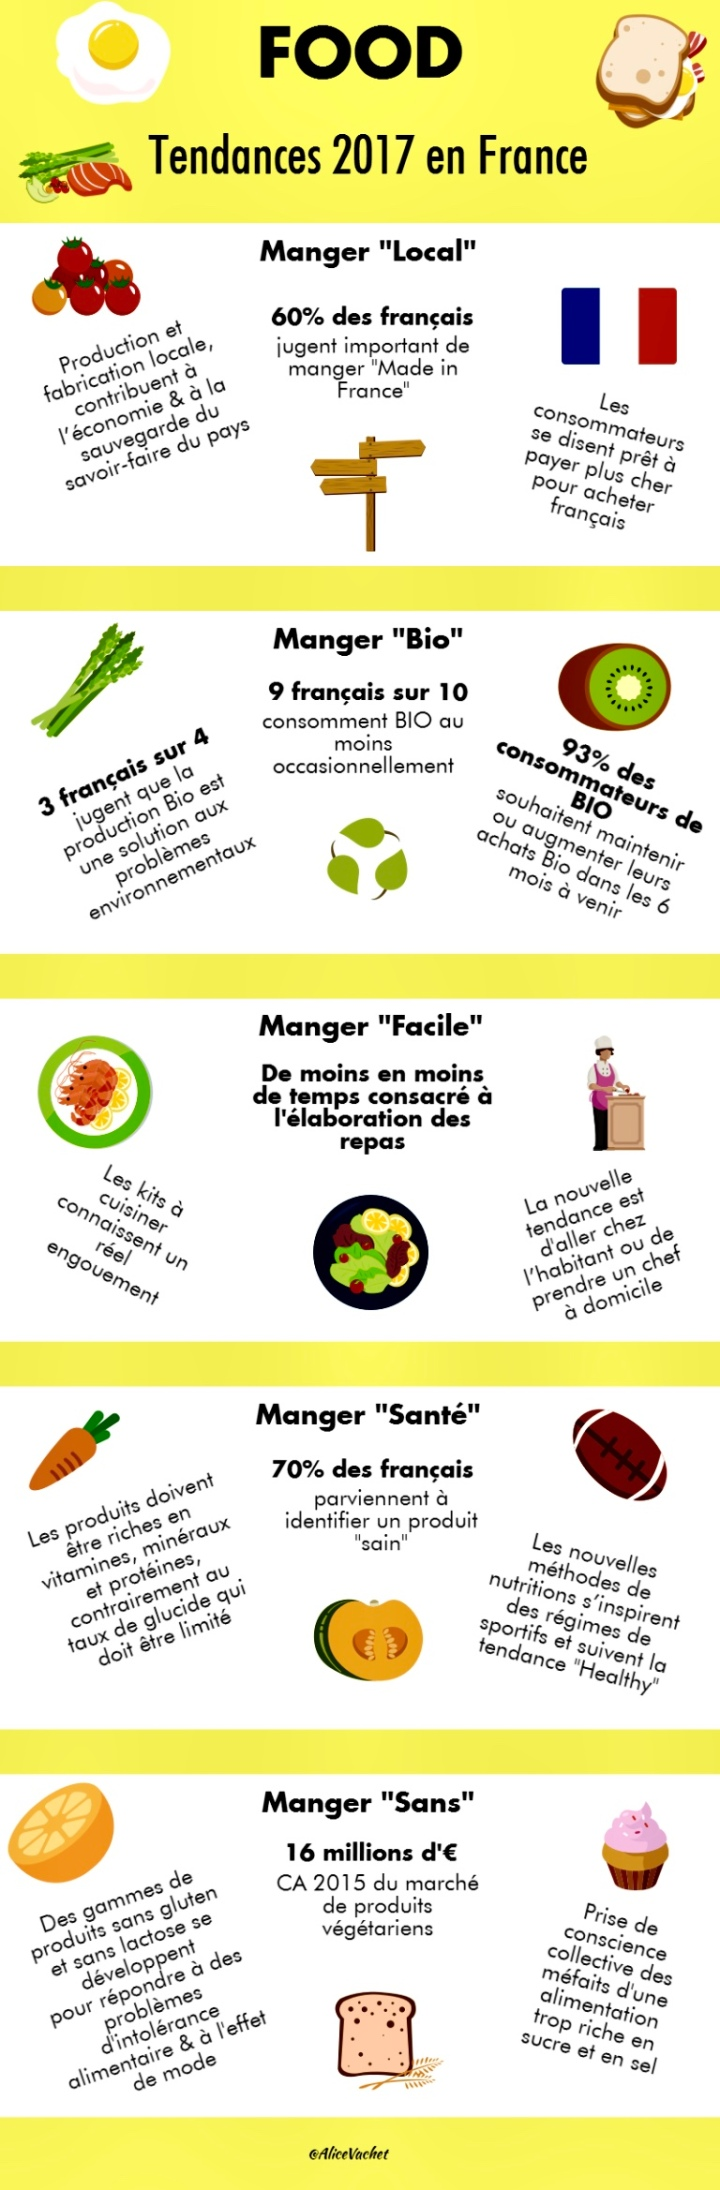 [Infographie] Food : Tendances 2017 en France 🇫🇷